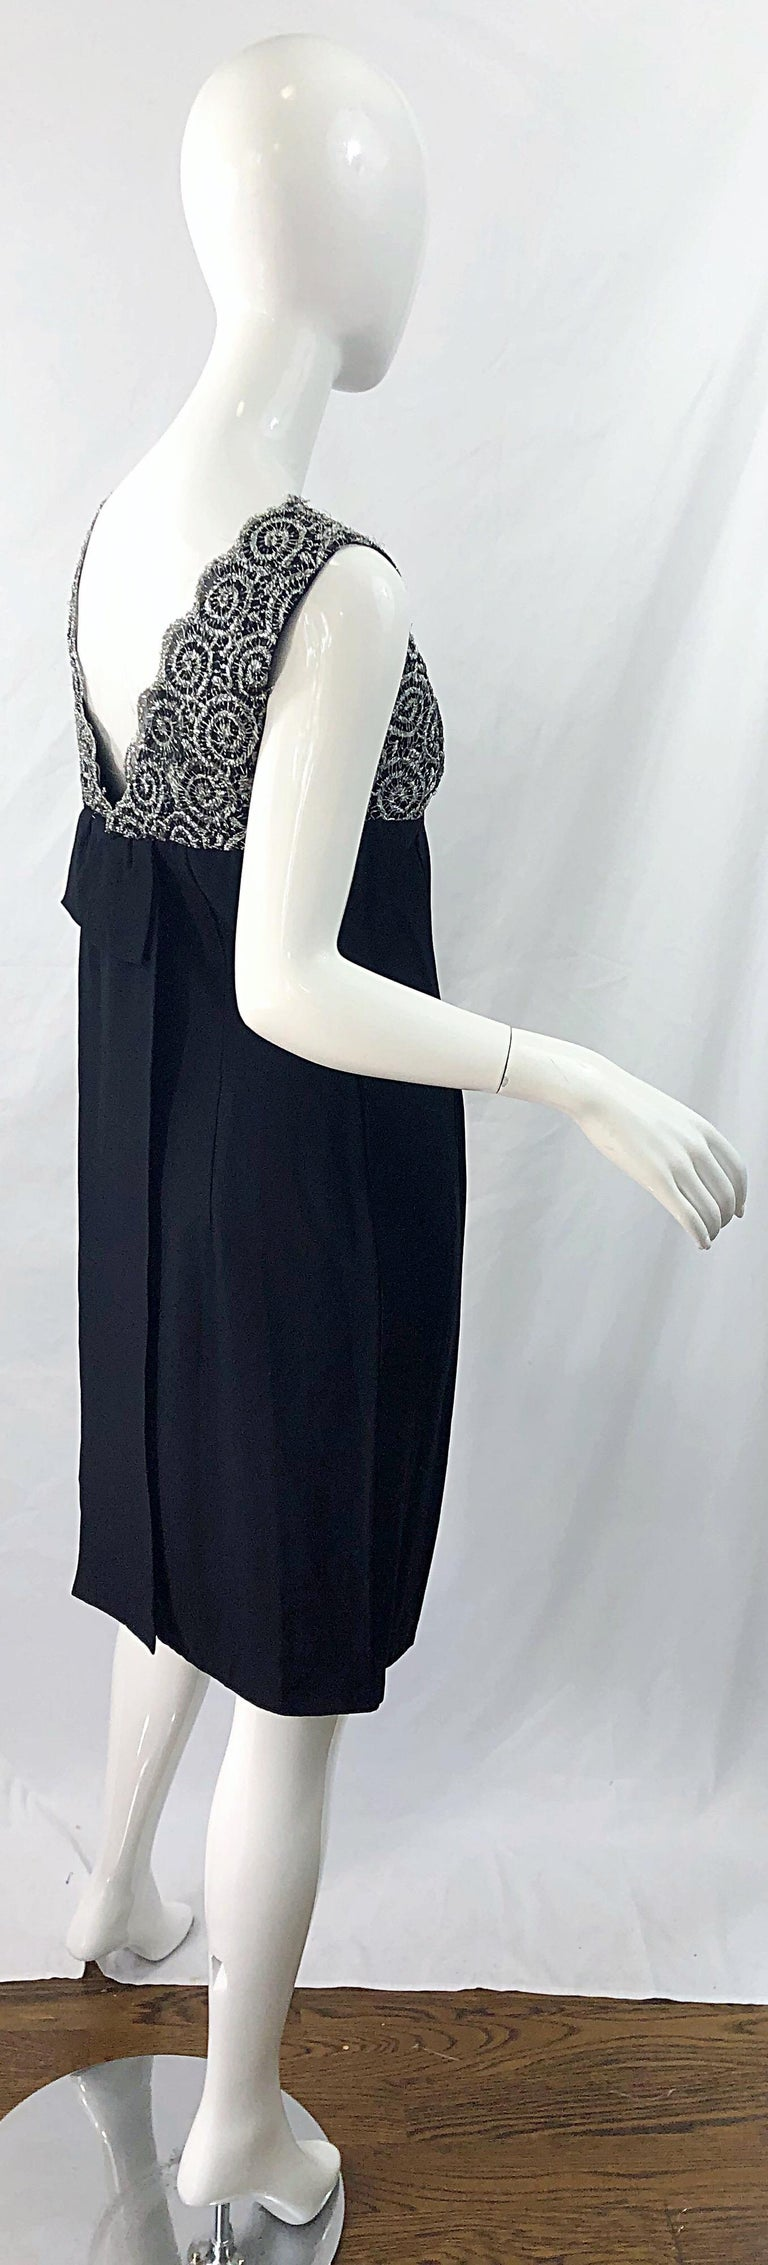 Chic 1960s Black and Silver Metallic Lace Rayon Crepe Vintage 60s Sheath Dress For Sale 6